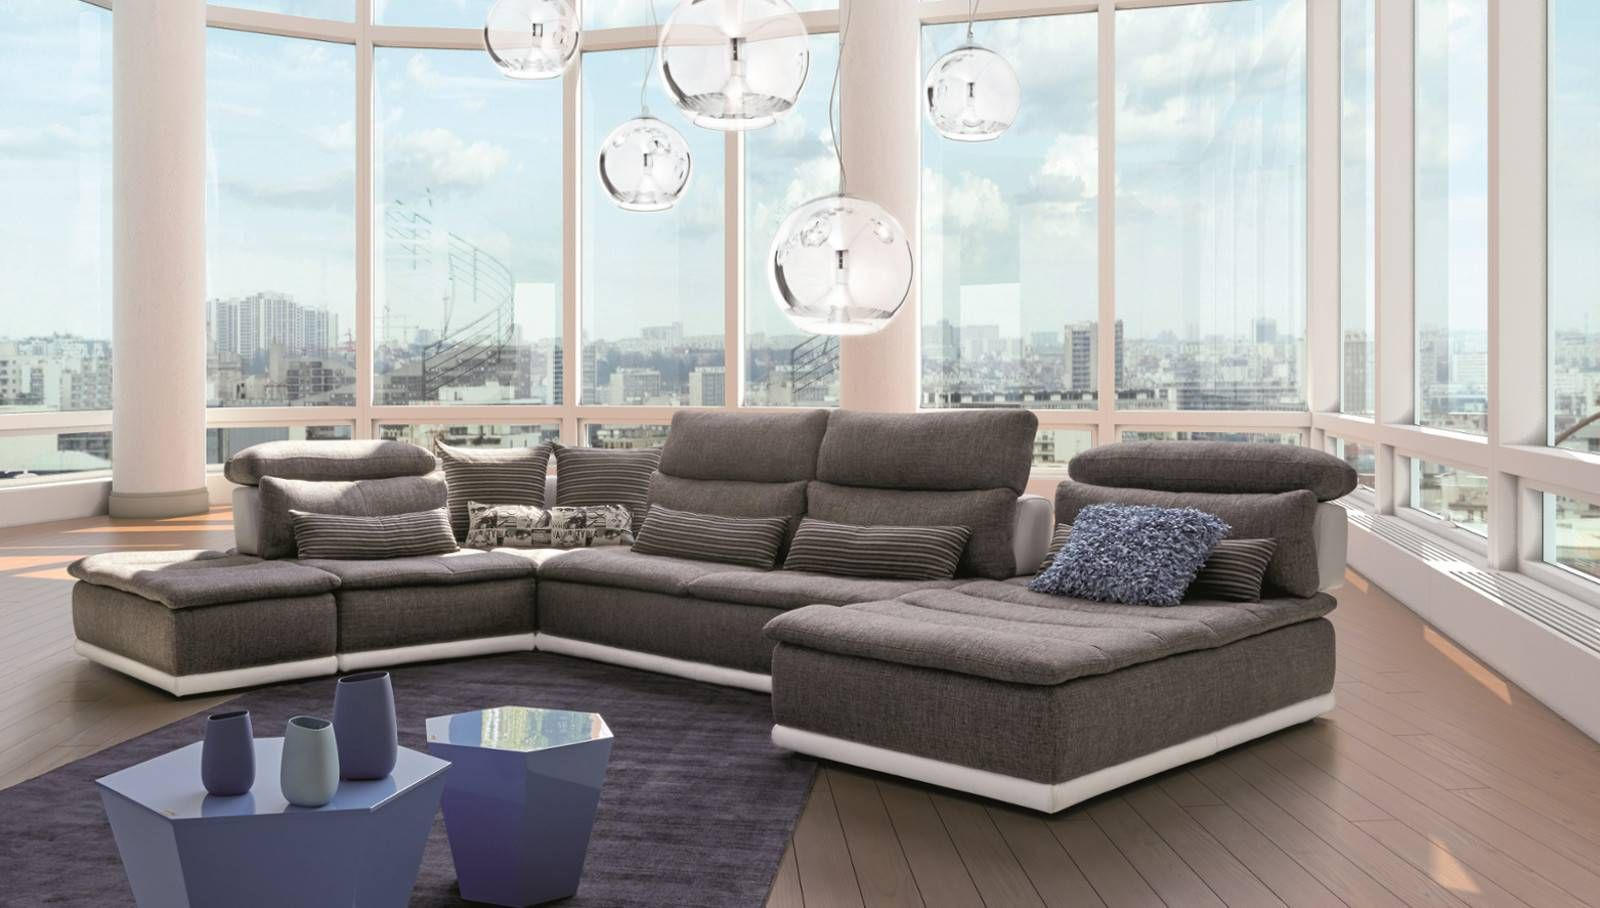 Xxl Meubles Canape Canape Xxl Panorama Meuble Et Deco In 2020 Home Decor Home Sectional Couch